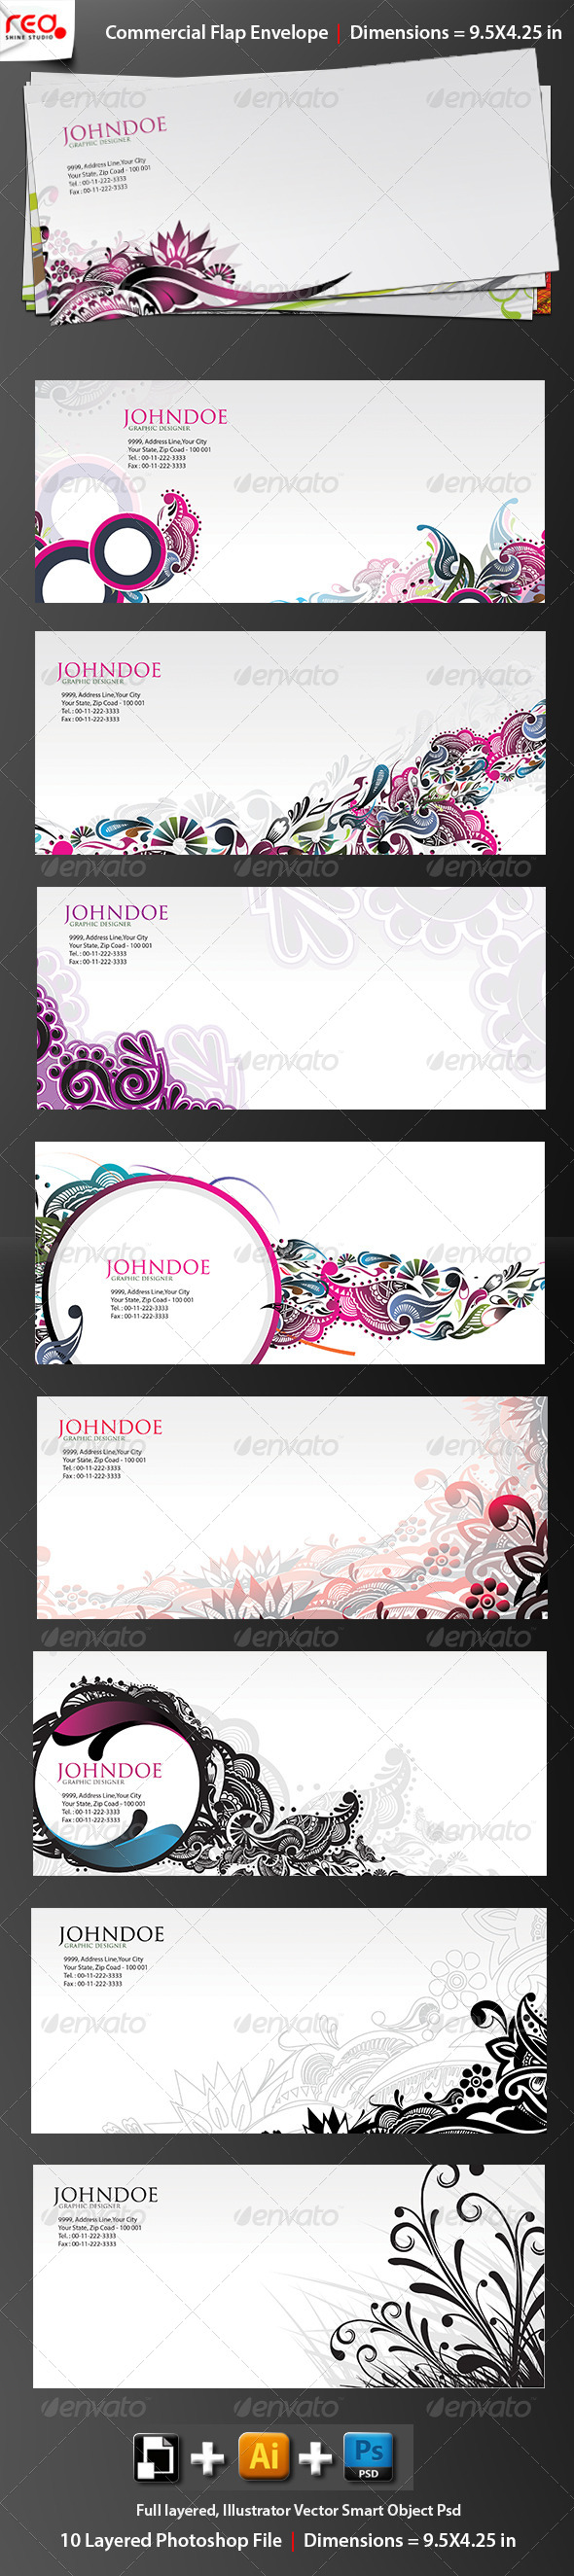 GraphicRiver Print Ready Commercial Bussiness Envelope 2 4354422